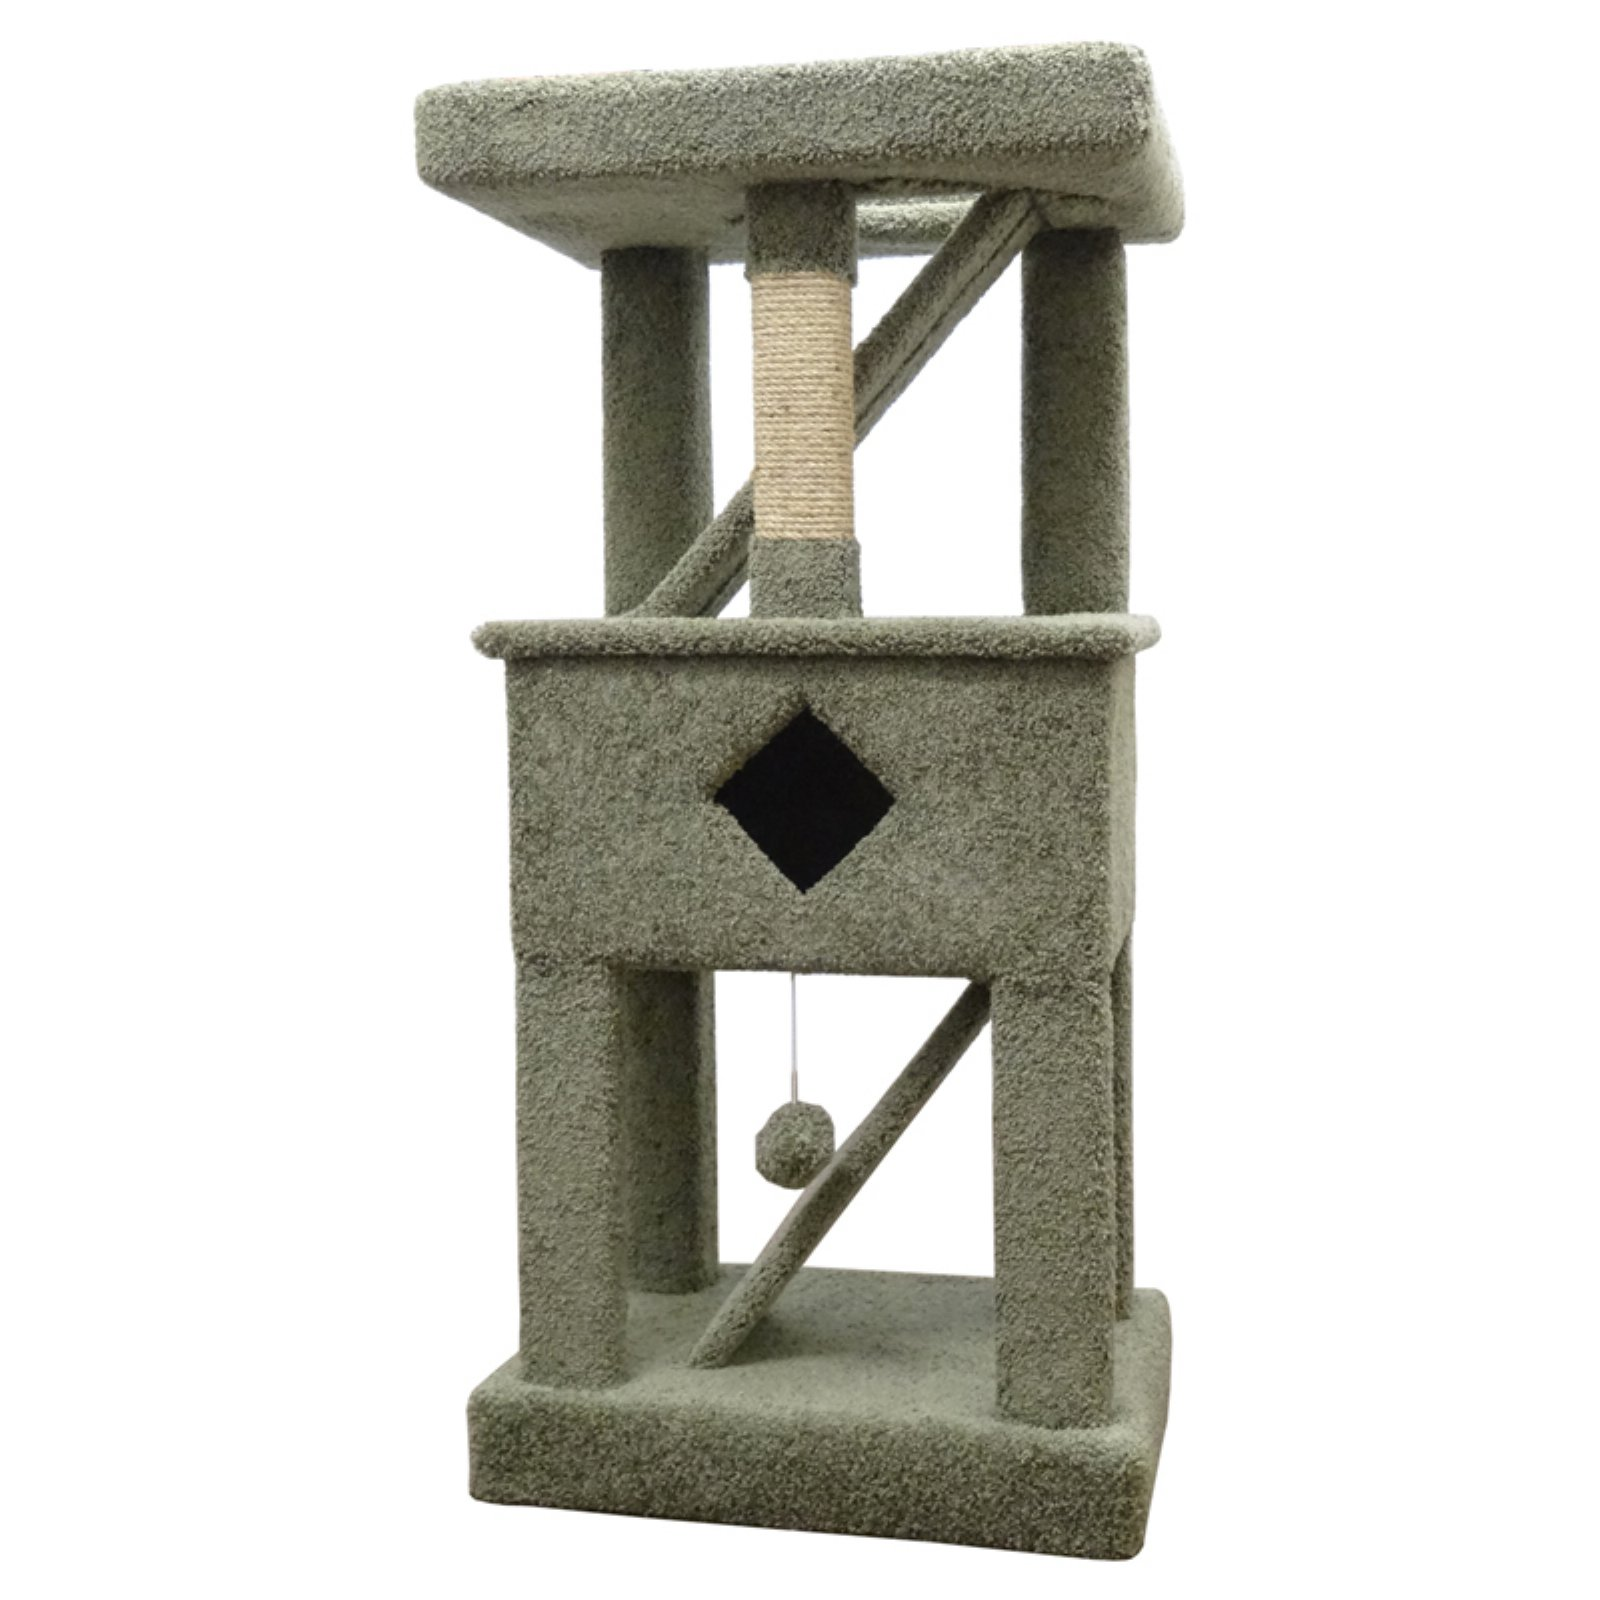 New Cat Condos Cat Play Gym